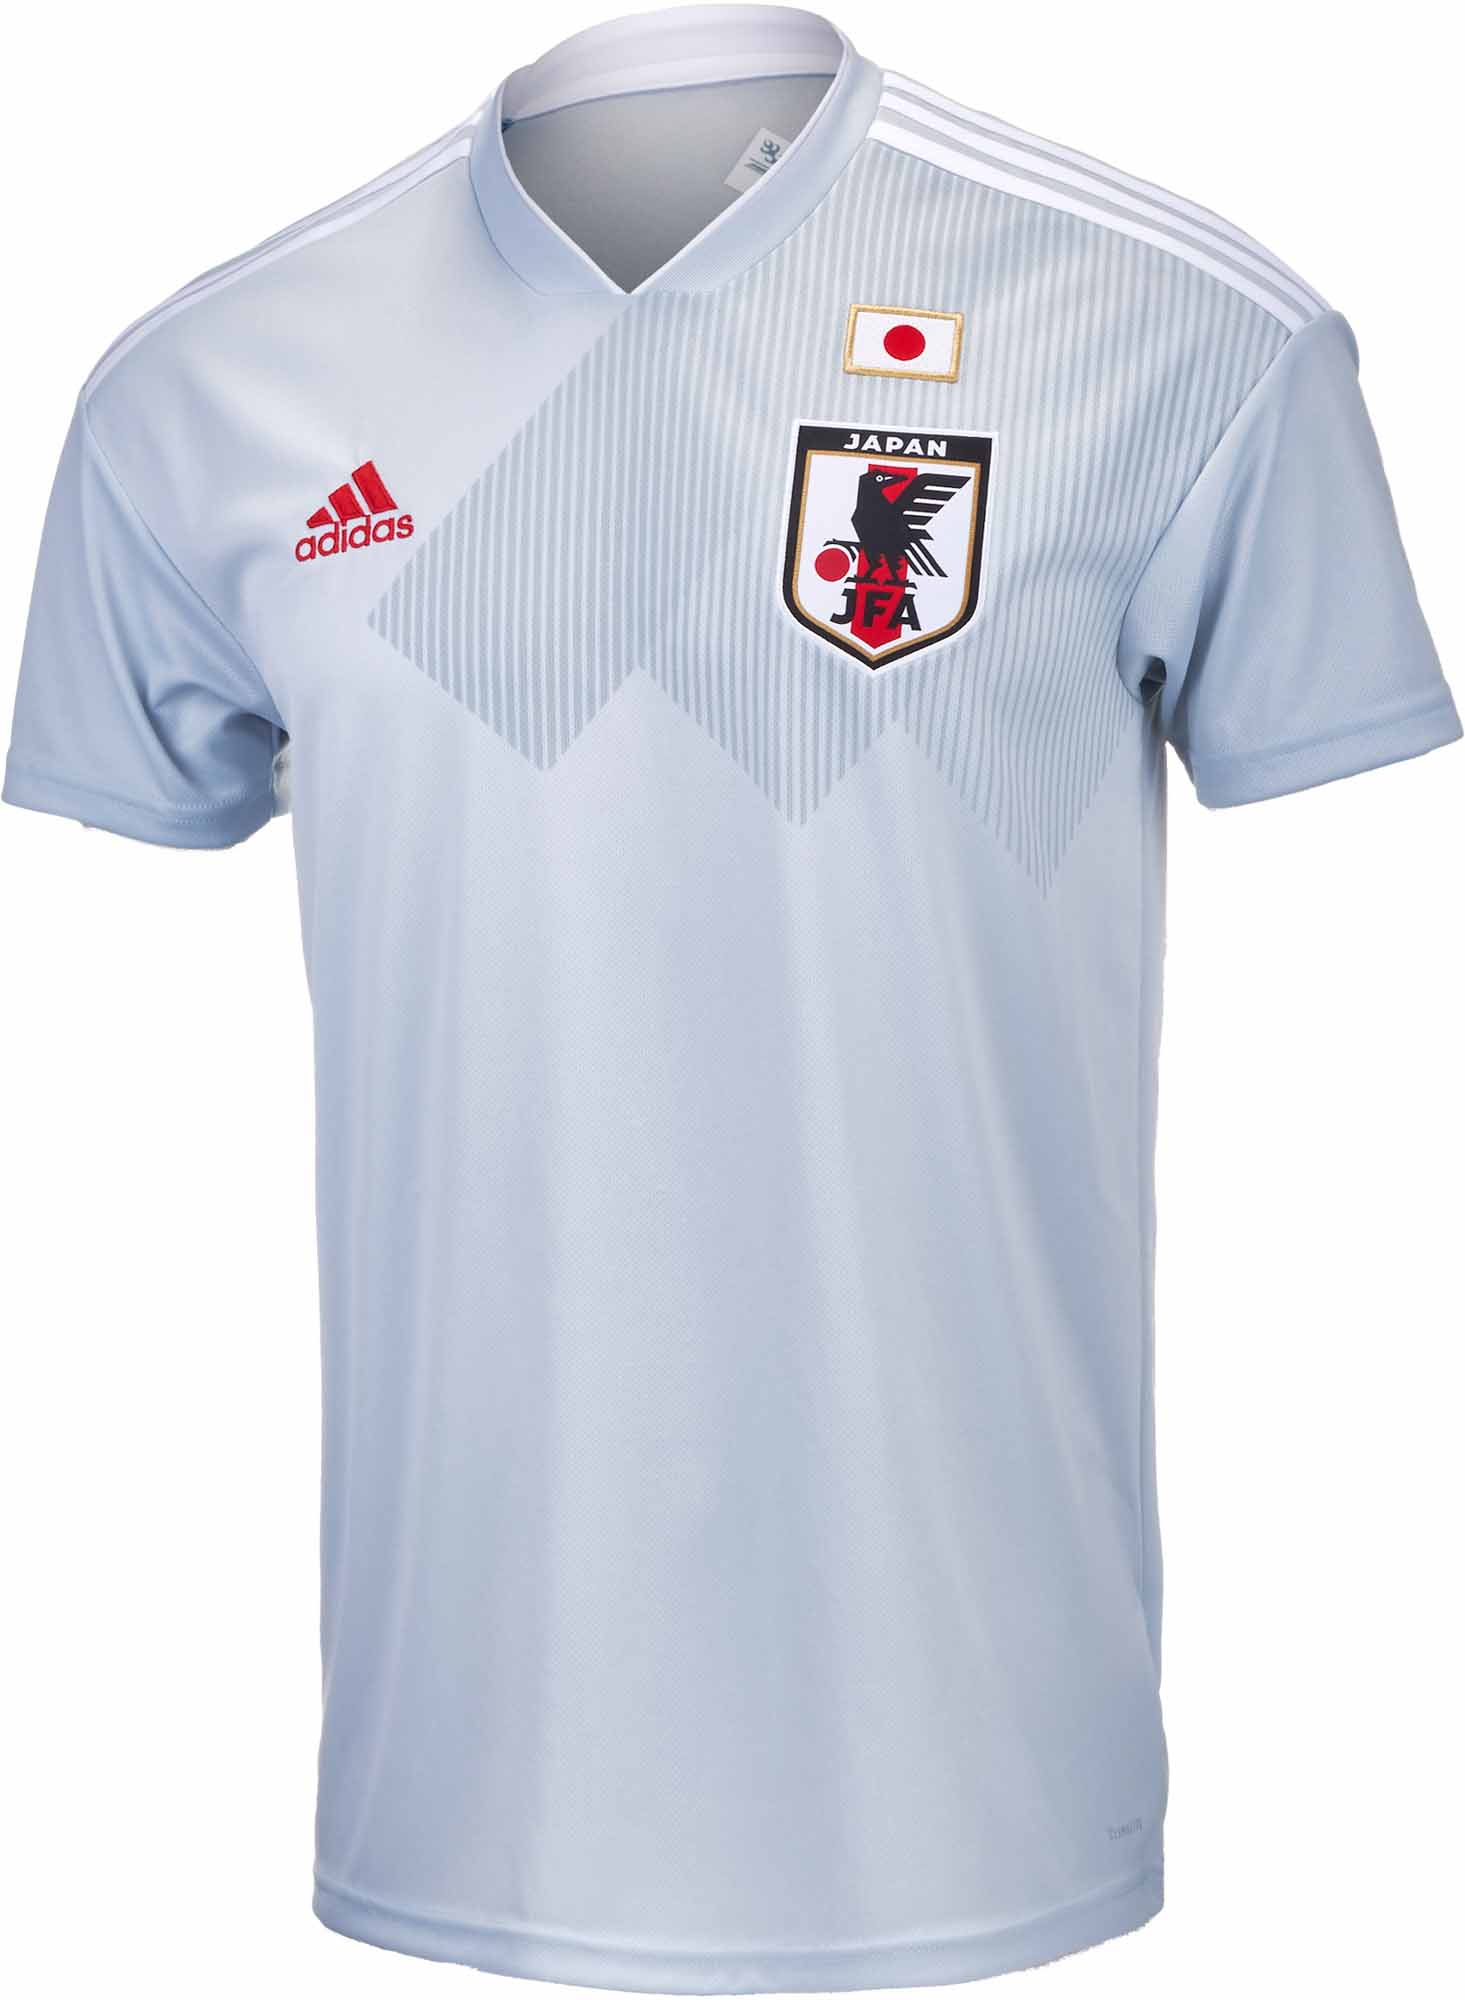 6cd7a537180 adidas Japan Away Jersey 2018-19 - Soccer Master